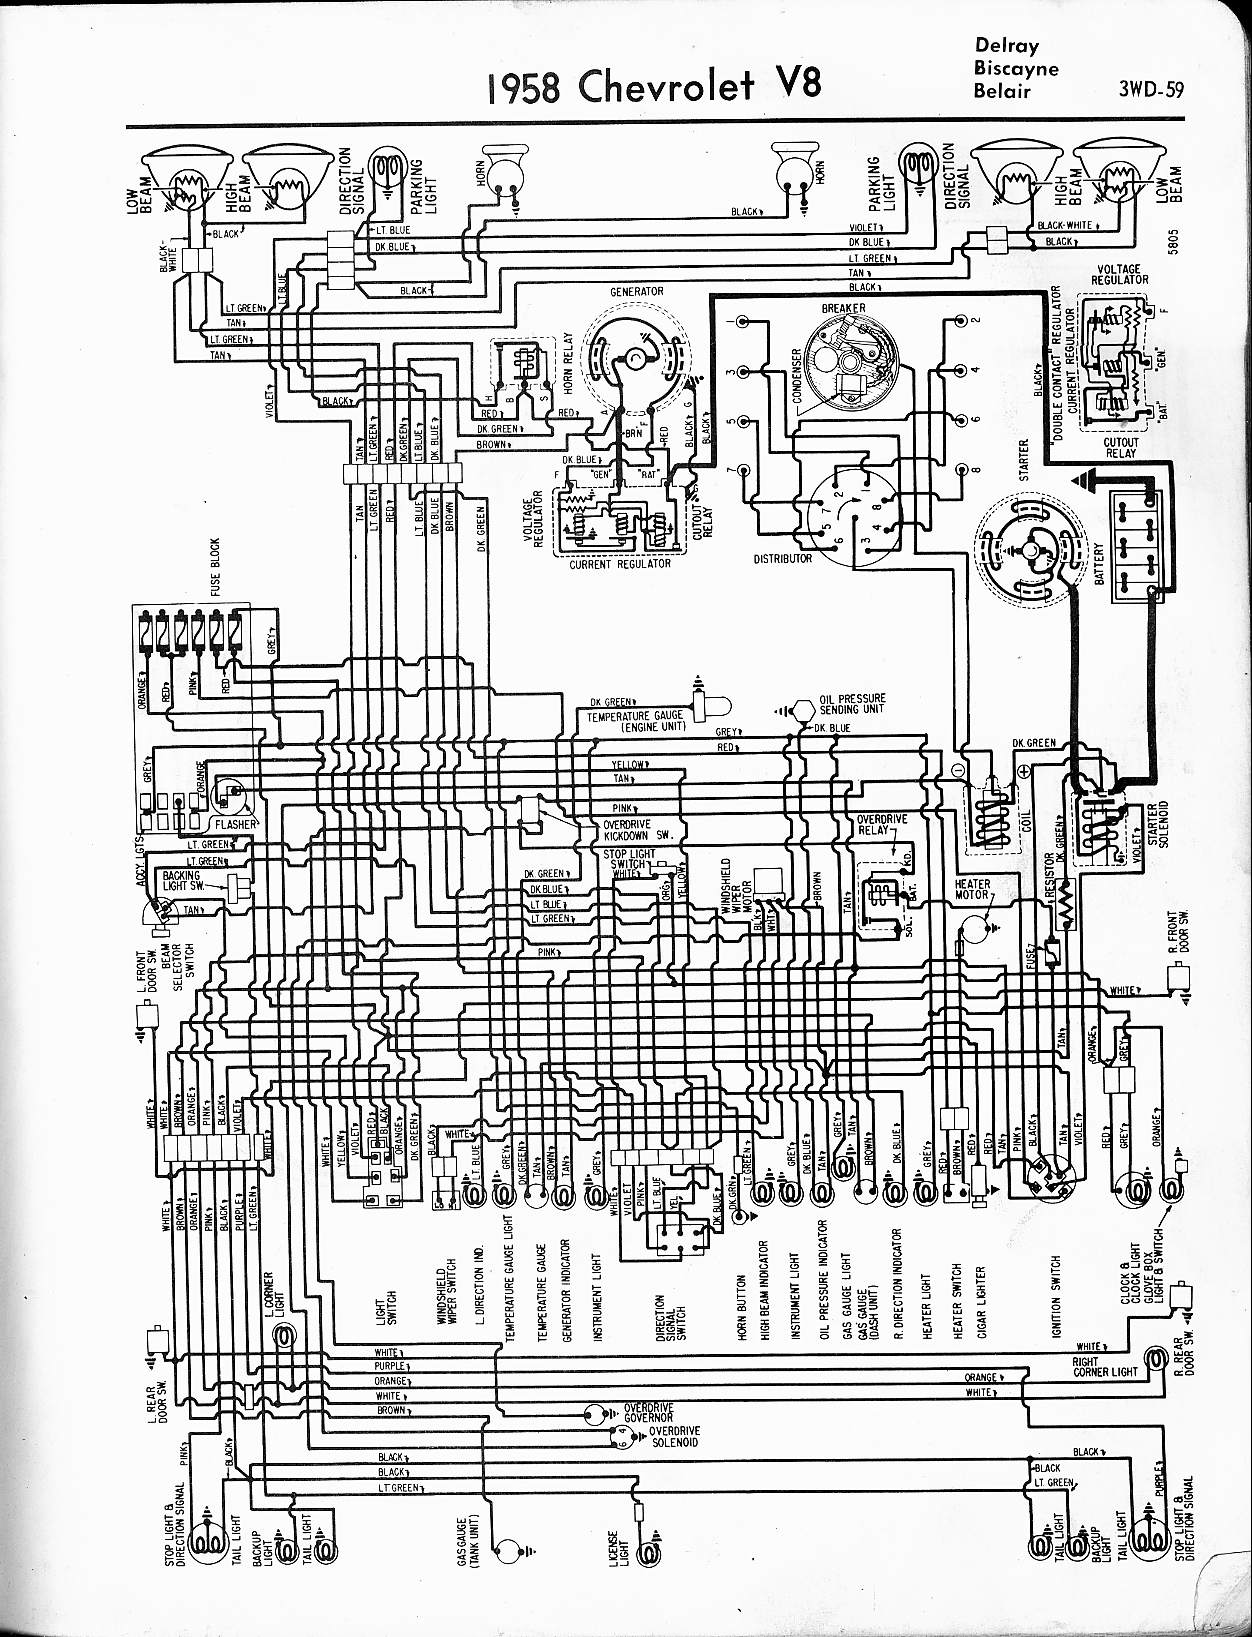 1980 Chevy Wiring Library Light Bar Wire Diagram Sx8bbbb 57 65 Diagrams Chevrolet